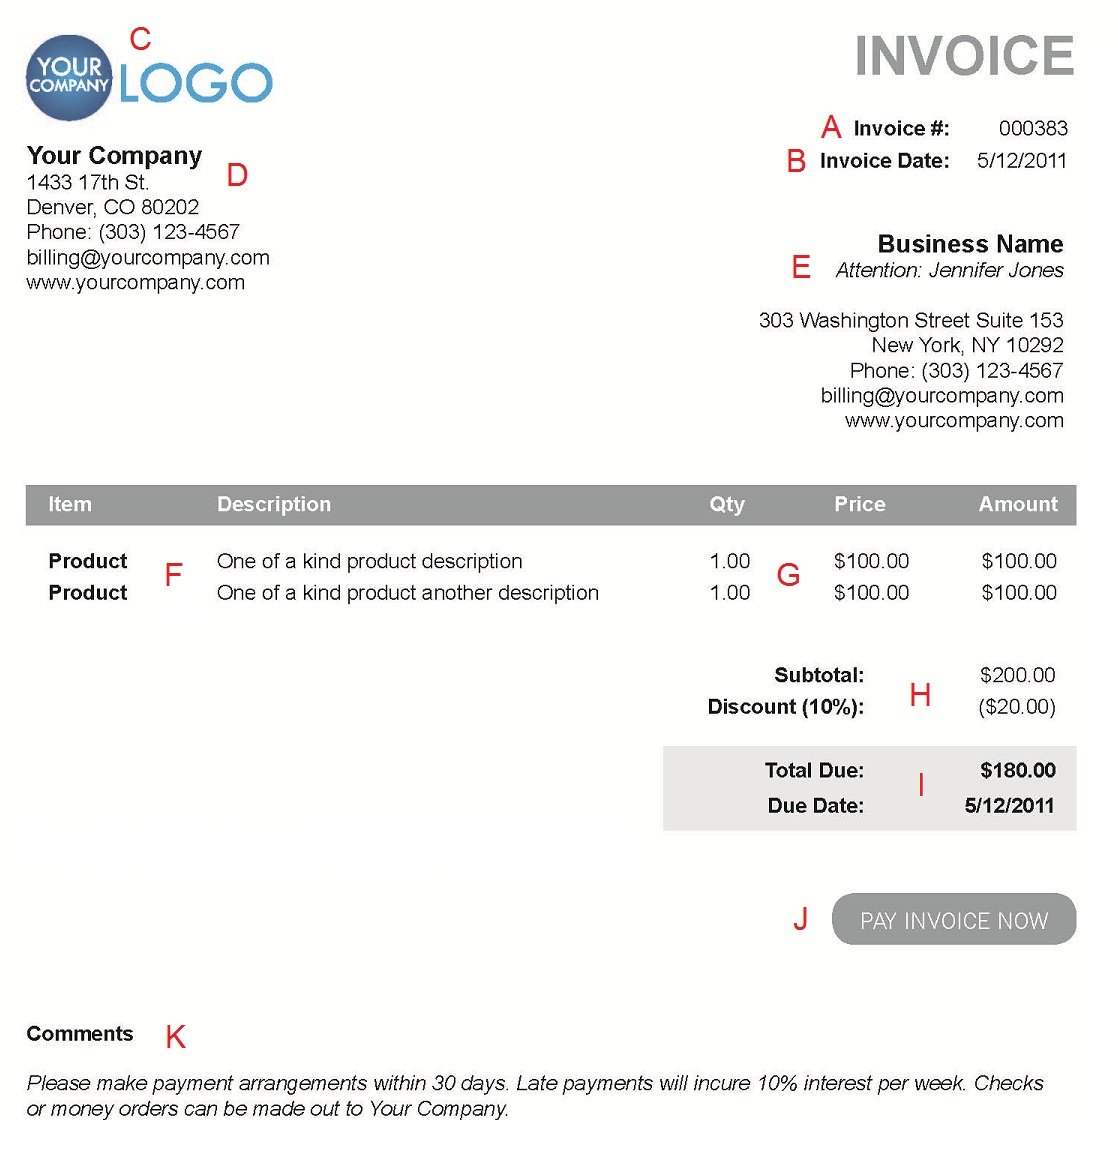 Aaaaeroincus  Pretty The  Different Sections Of An Electronic Payment Invoice With Marvelous A  With Cute Invoice Blank Template Also Example Of An Invoice For Payment In Addition Software To Create Invoices And Proforma Invoice Template Download Free As Well As Simple Invoice Creator Additionally Google Invoices Templates From Paysimplecom With Aaaaeroincus  Marvelous The  Different Sections Of An Electronic Payment Invoice With Cute A  And Pretty Invoice Blank Template Also Example Of An Invoice For Payment In Addition Software To Create Invoices From Paysimplecom